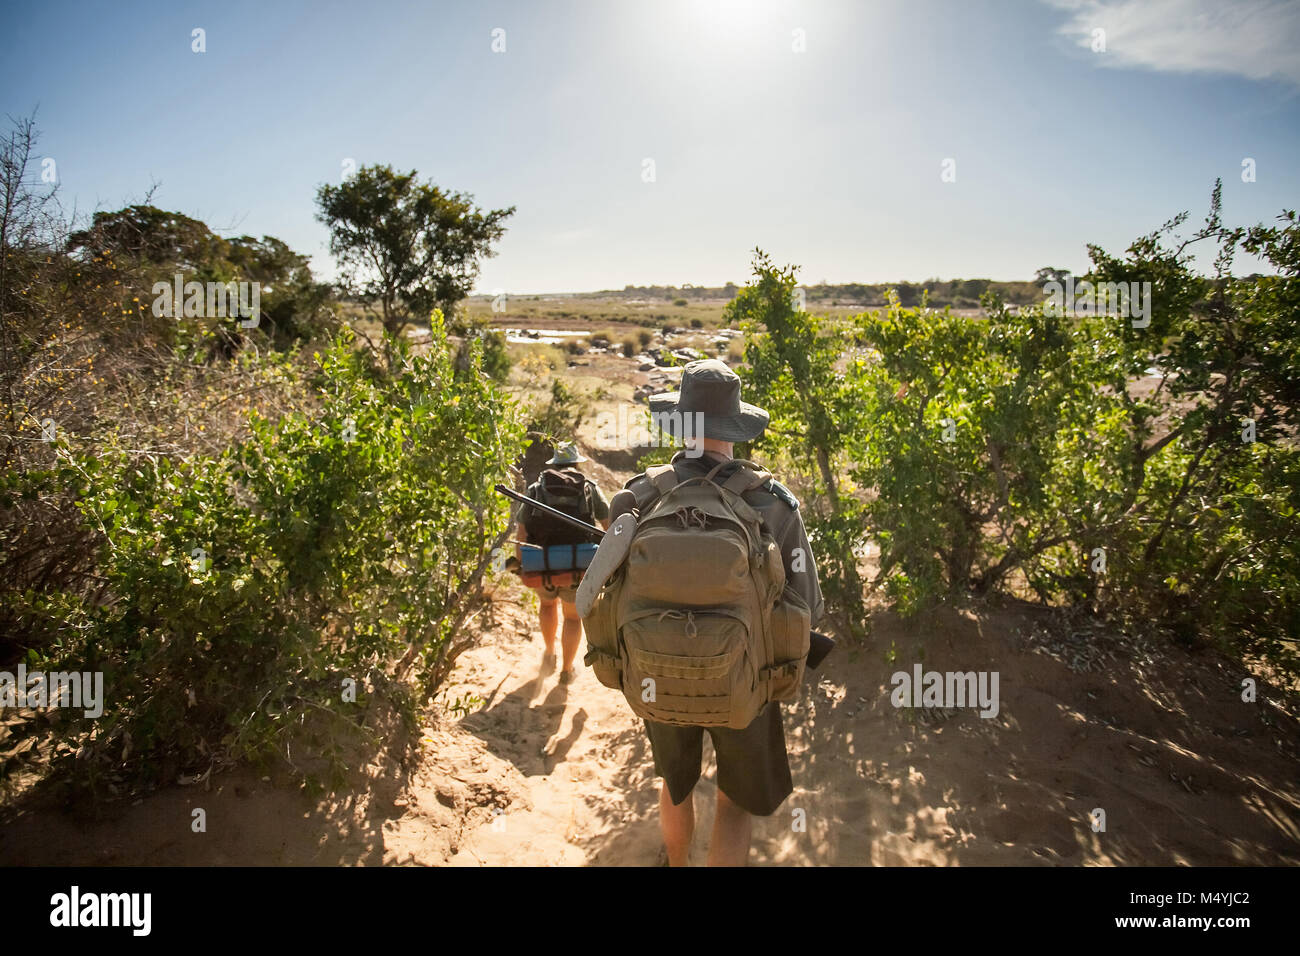 Game Rangers tracking through the bush looking for poachers. - Stock Image